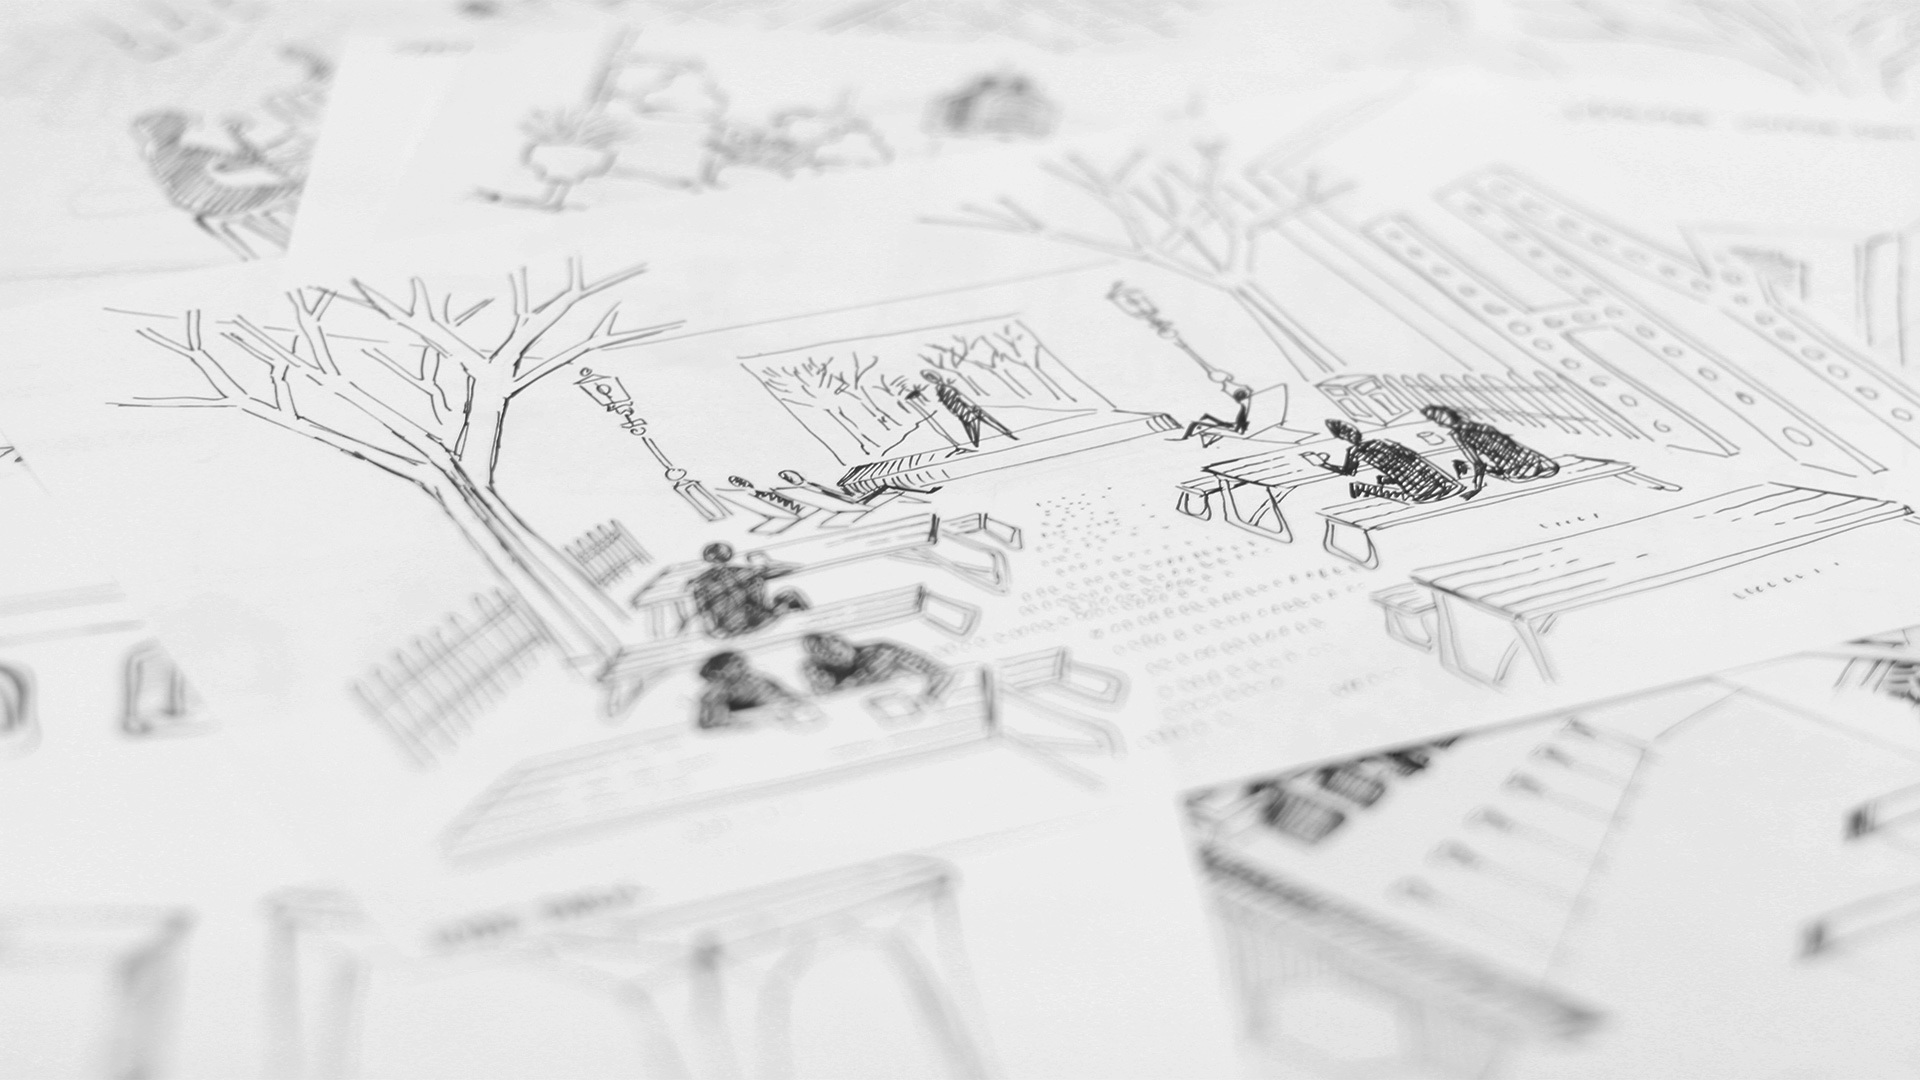 LIQUI - BRIEF AND INITIAL DESIGNS - Hyde-Park-sketch of a Liqui design for London Coffee Festival